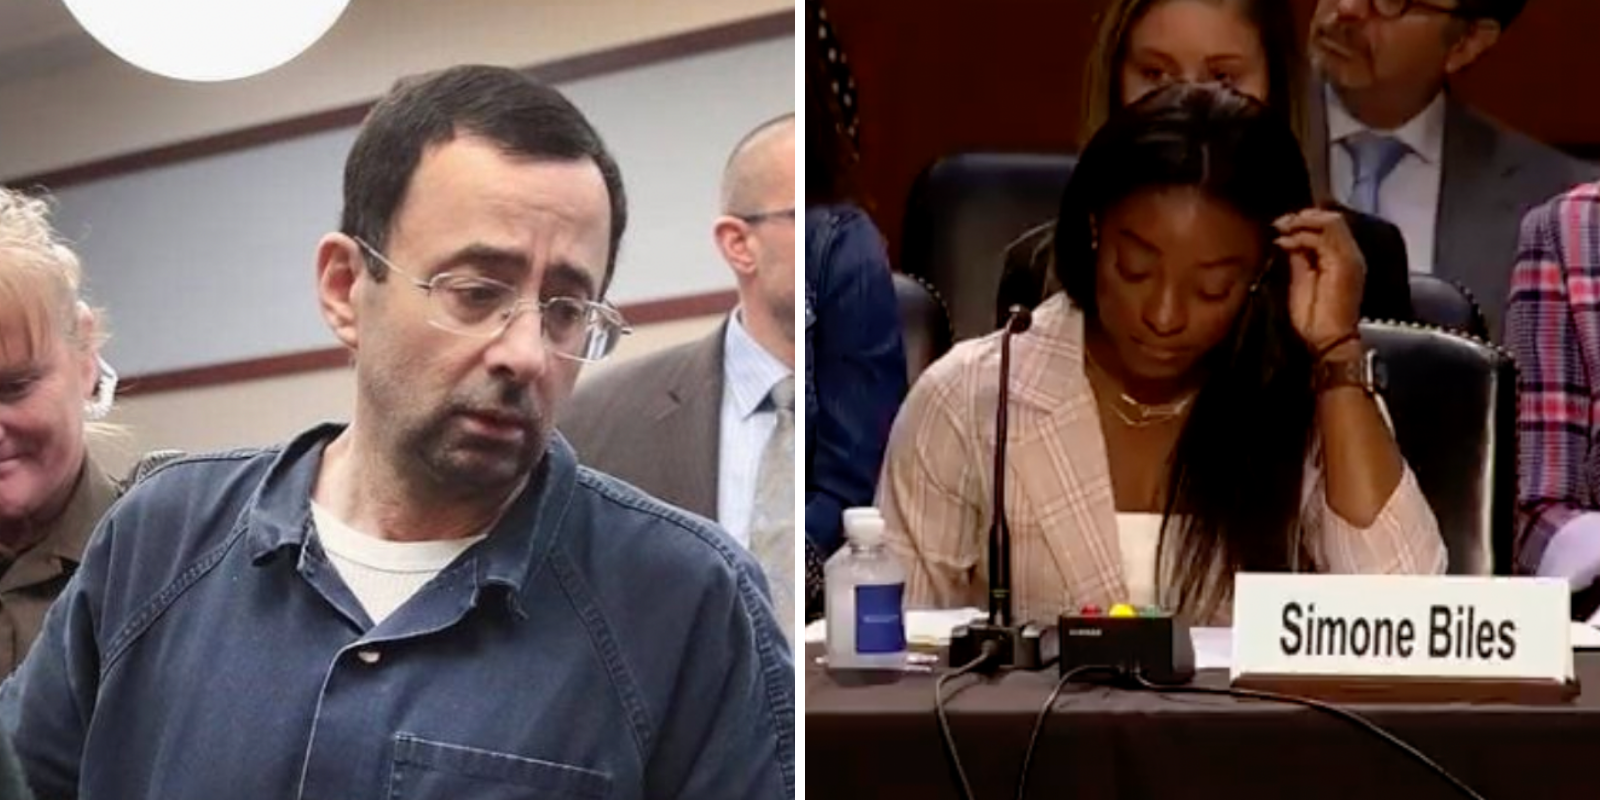 BREAKING: US gymnasts slam the FBI for 'concealing' Larry Nassar abuse